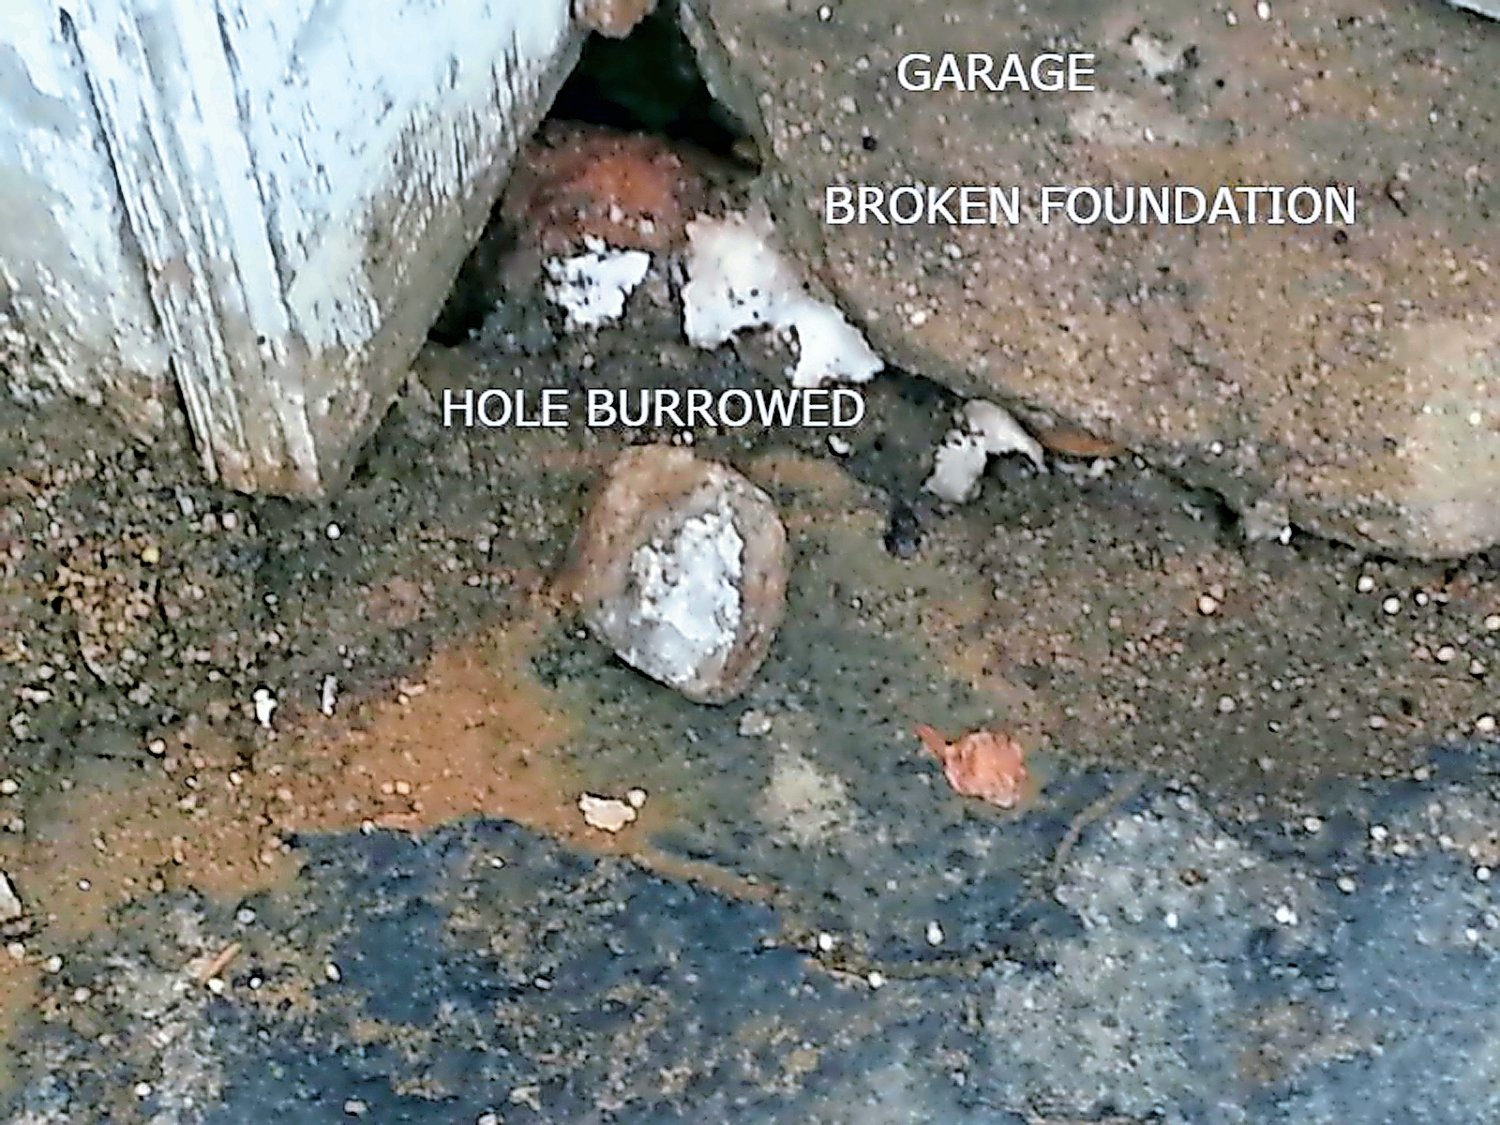 Valley Stream resident Linda Marlowe sent the Herald this photo, purportedly showing a hole rats burrowed on her property.